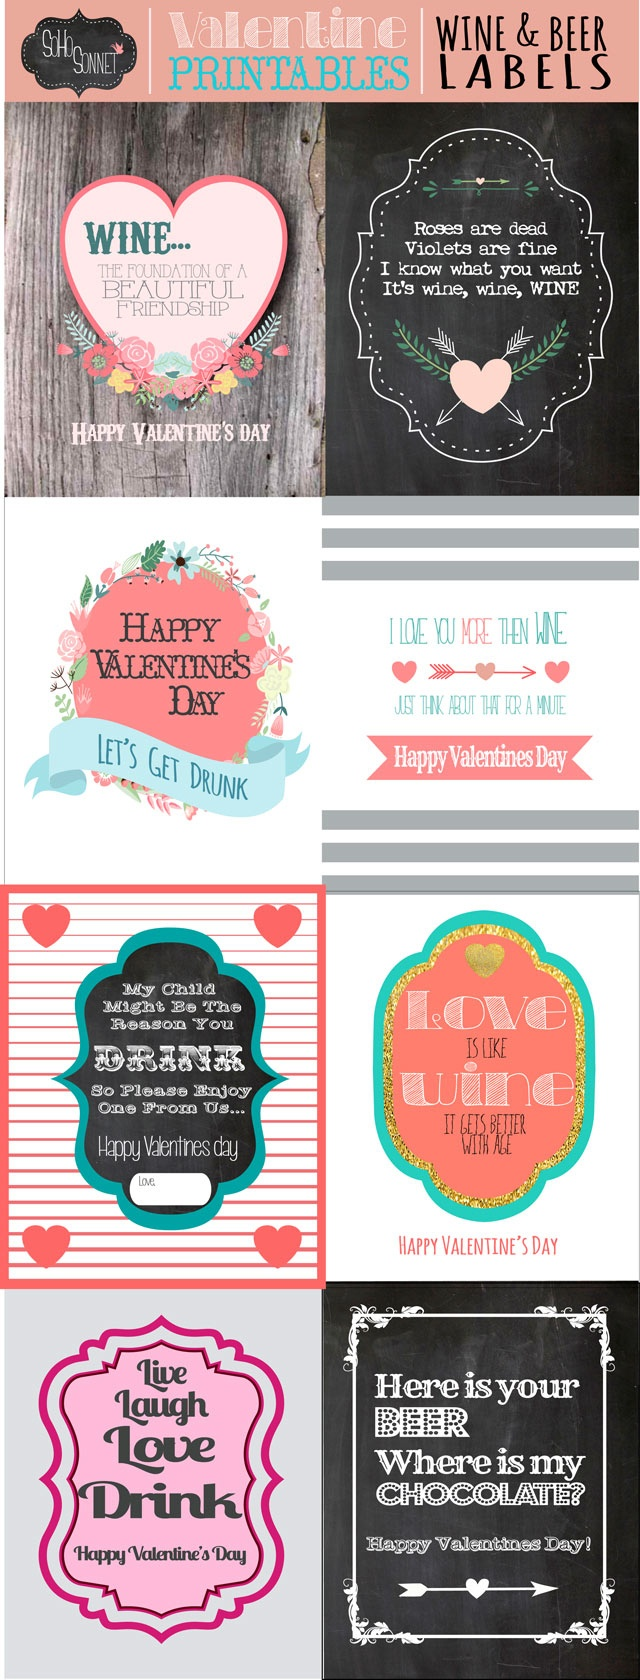 Valentines Day Wine And Beer Gift Labels - Sohosonnet Creative Living - Free Beer Printables